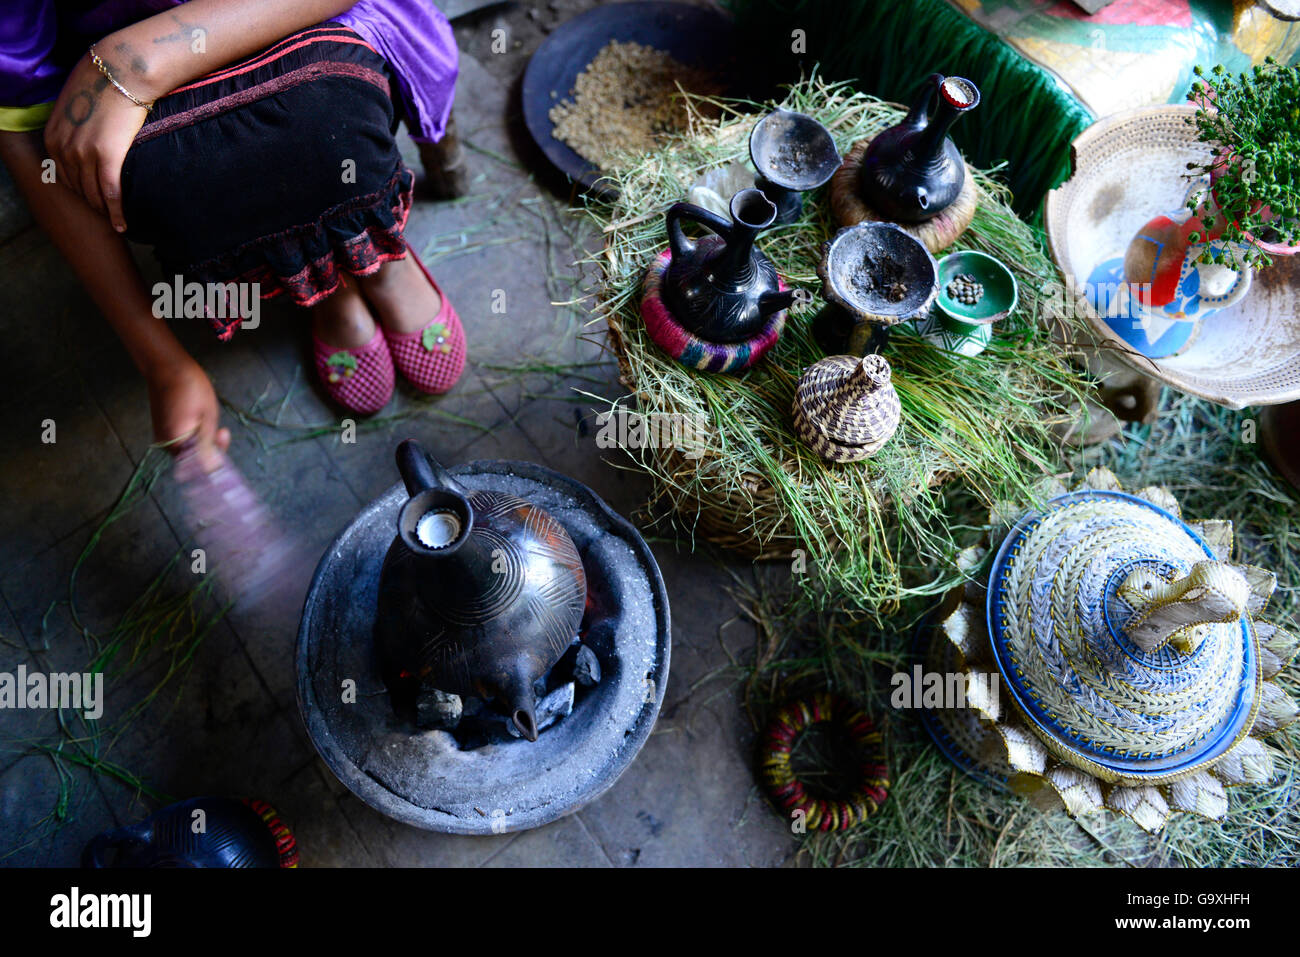 Woman preparing traditional Ethiopian coffee. Lalibela. Ethiopia, December 2014. - Stock Image